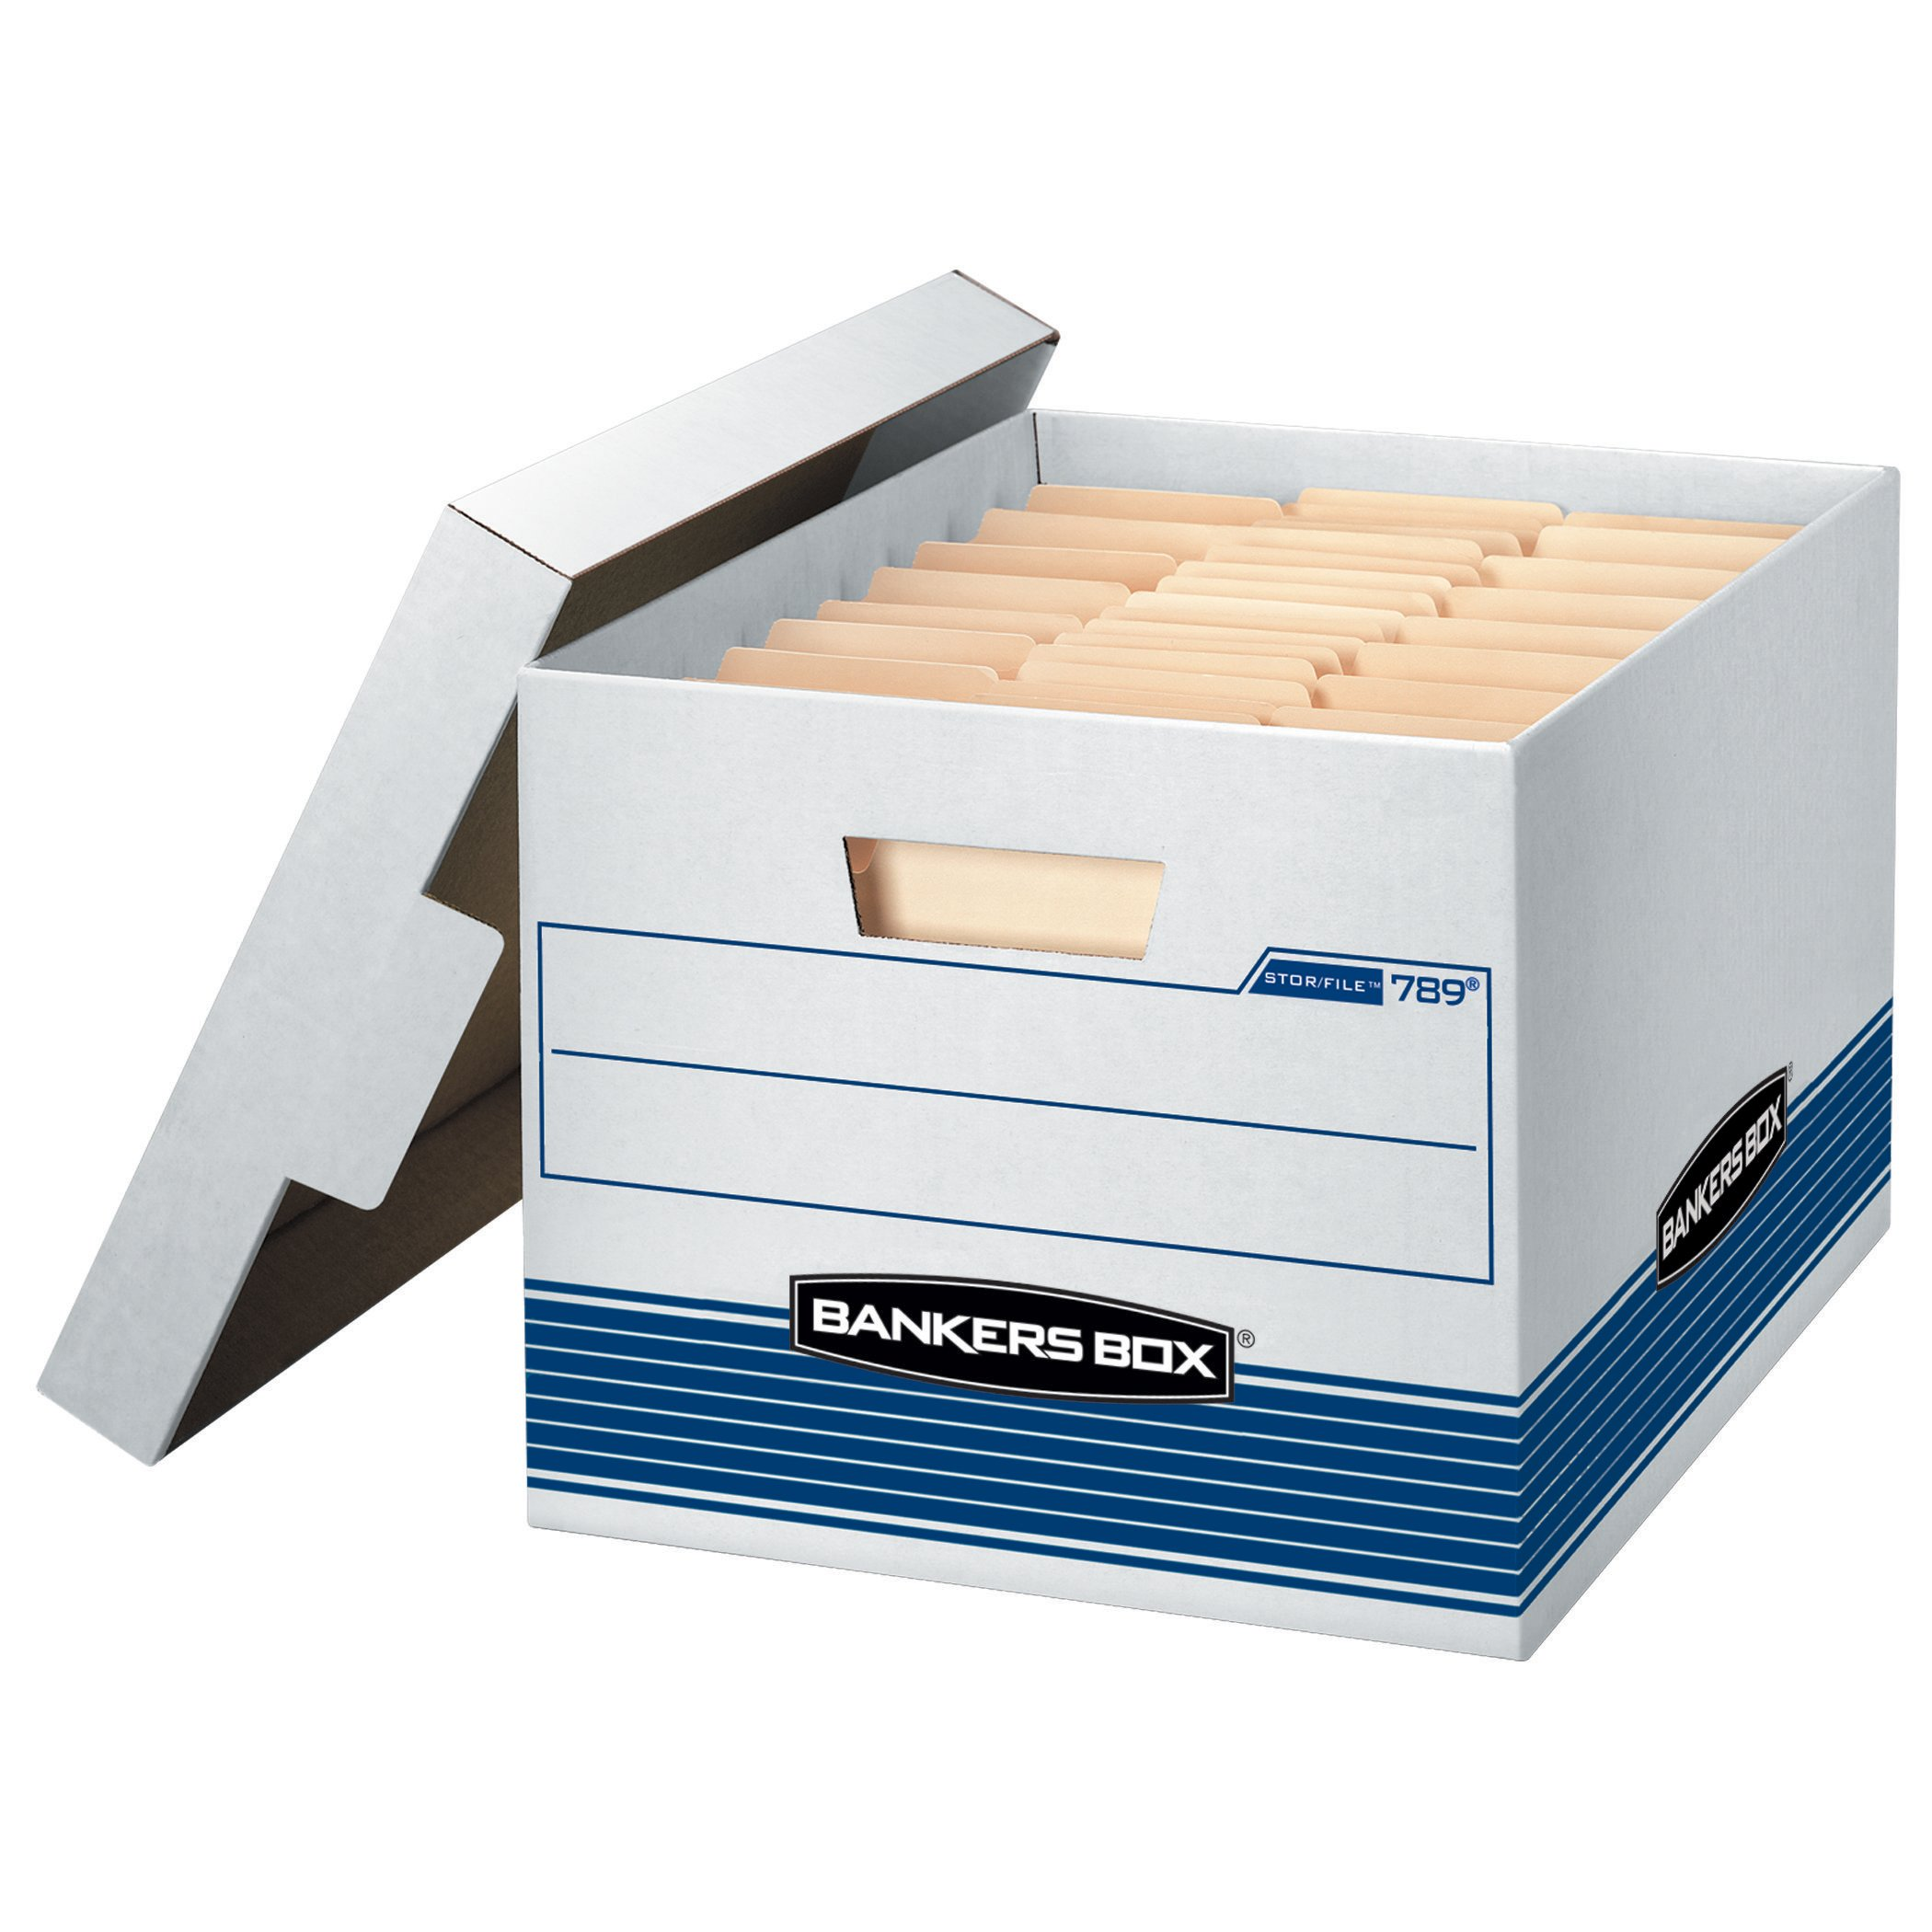 Bankers Box Stor/File Medium-Duty Storage Boxes, Letter/Legal, 12 Pack (00789)